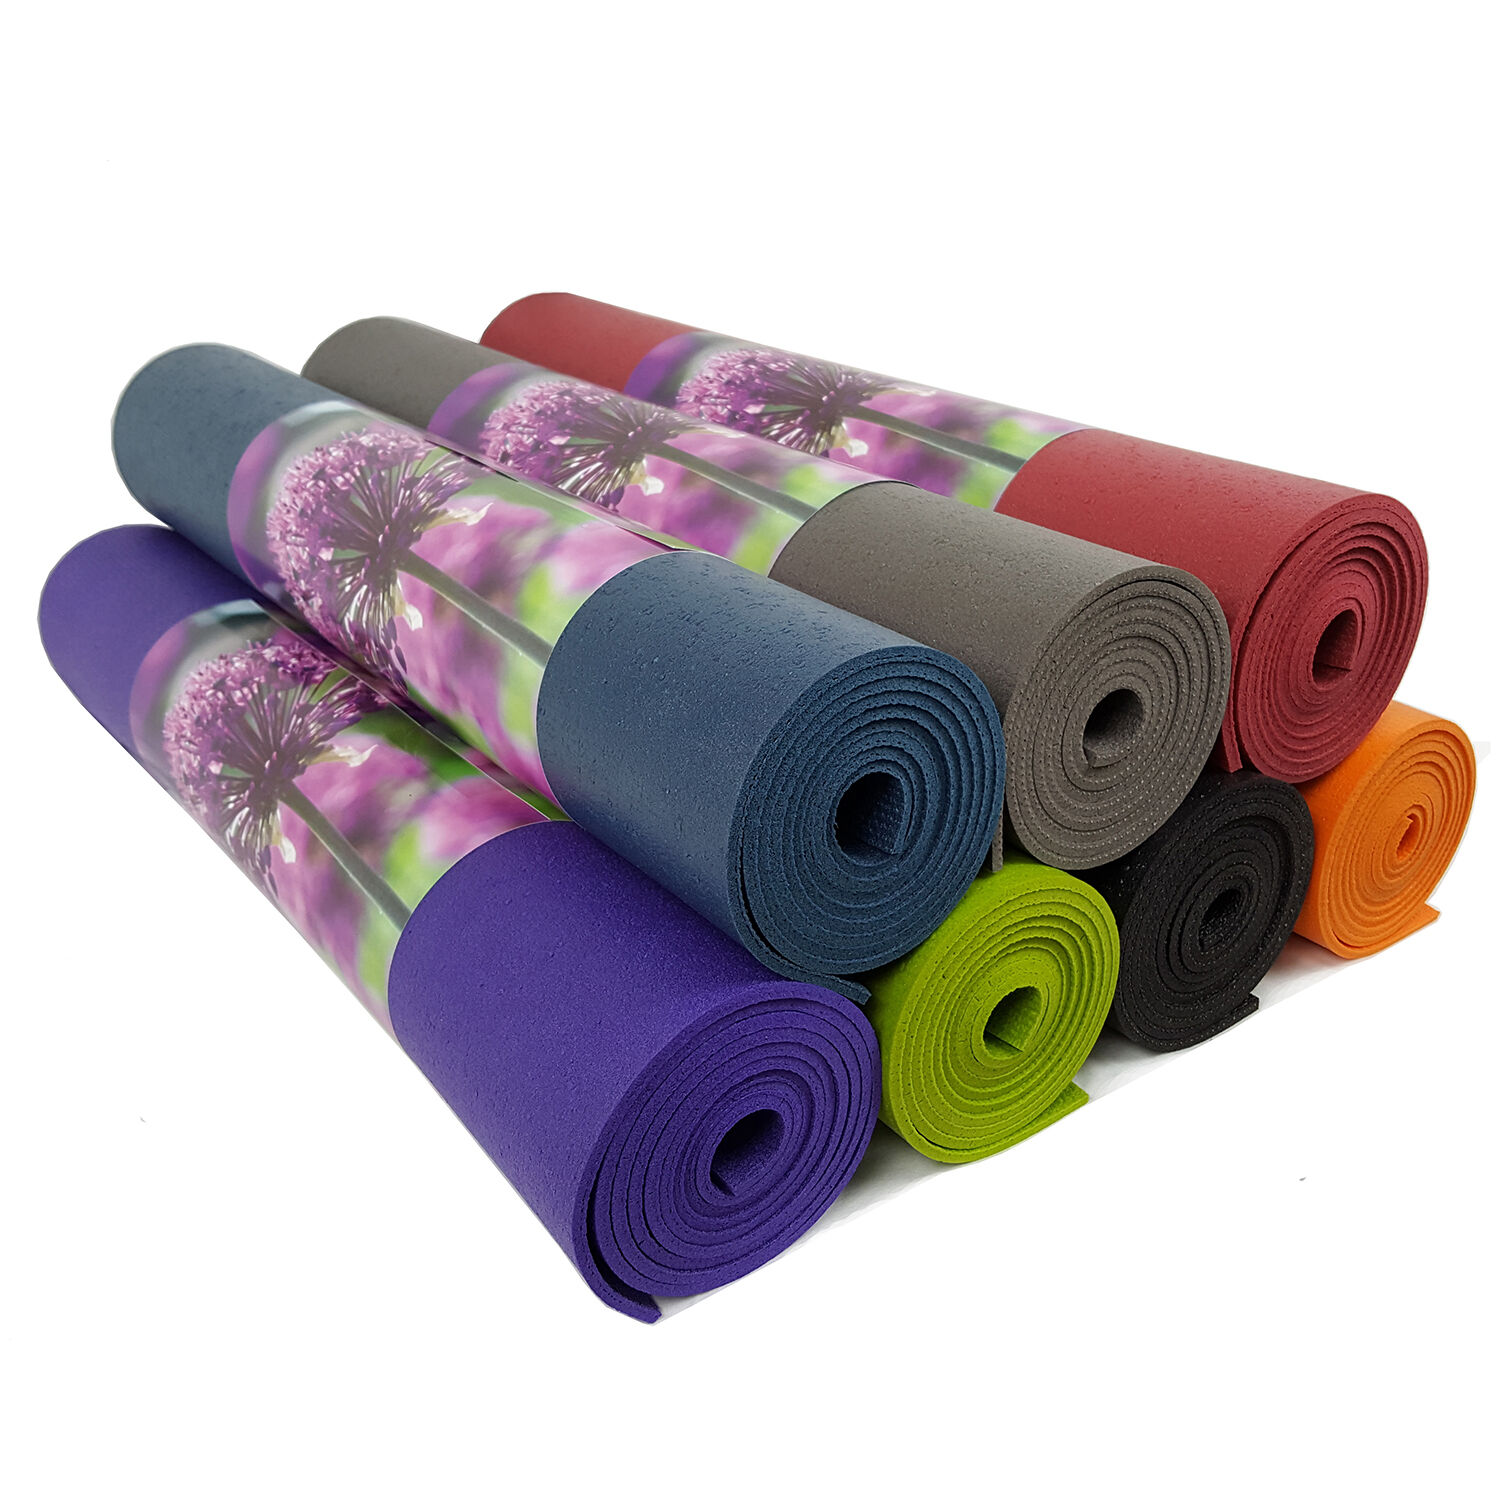 200cm Extra Long Ruth White Premier Yoga Mat - 60cm Wide - 7 Colours